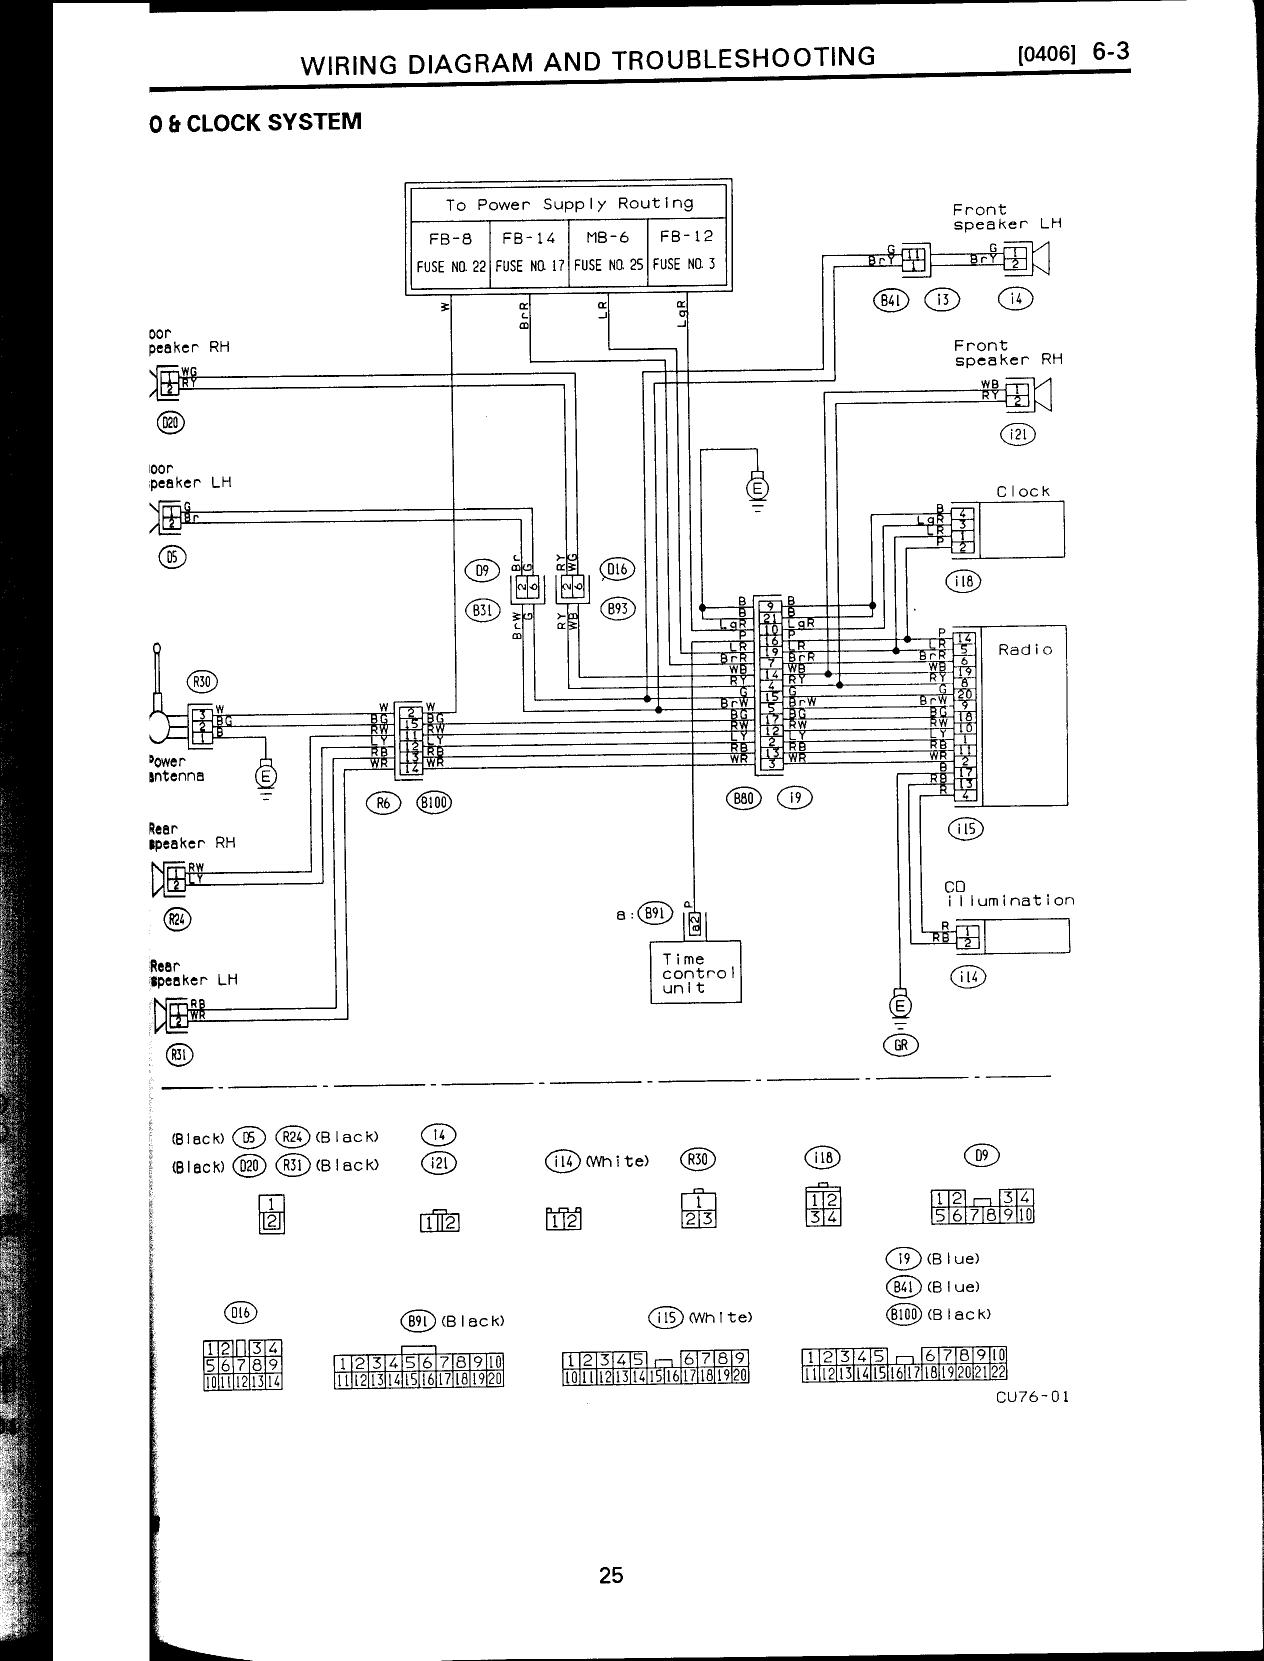 subaru - car pdf manual, wiring diagram & fault codes dtc  automotive-manuals.net